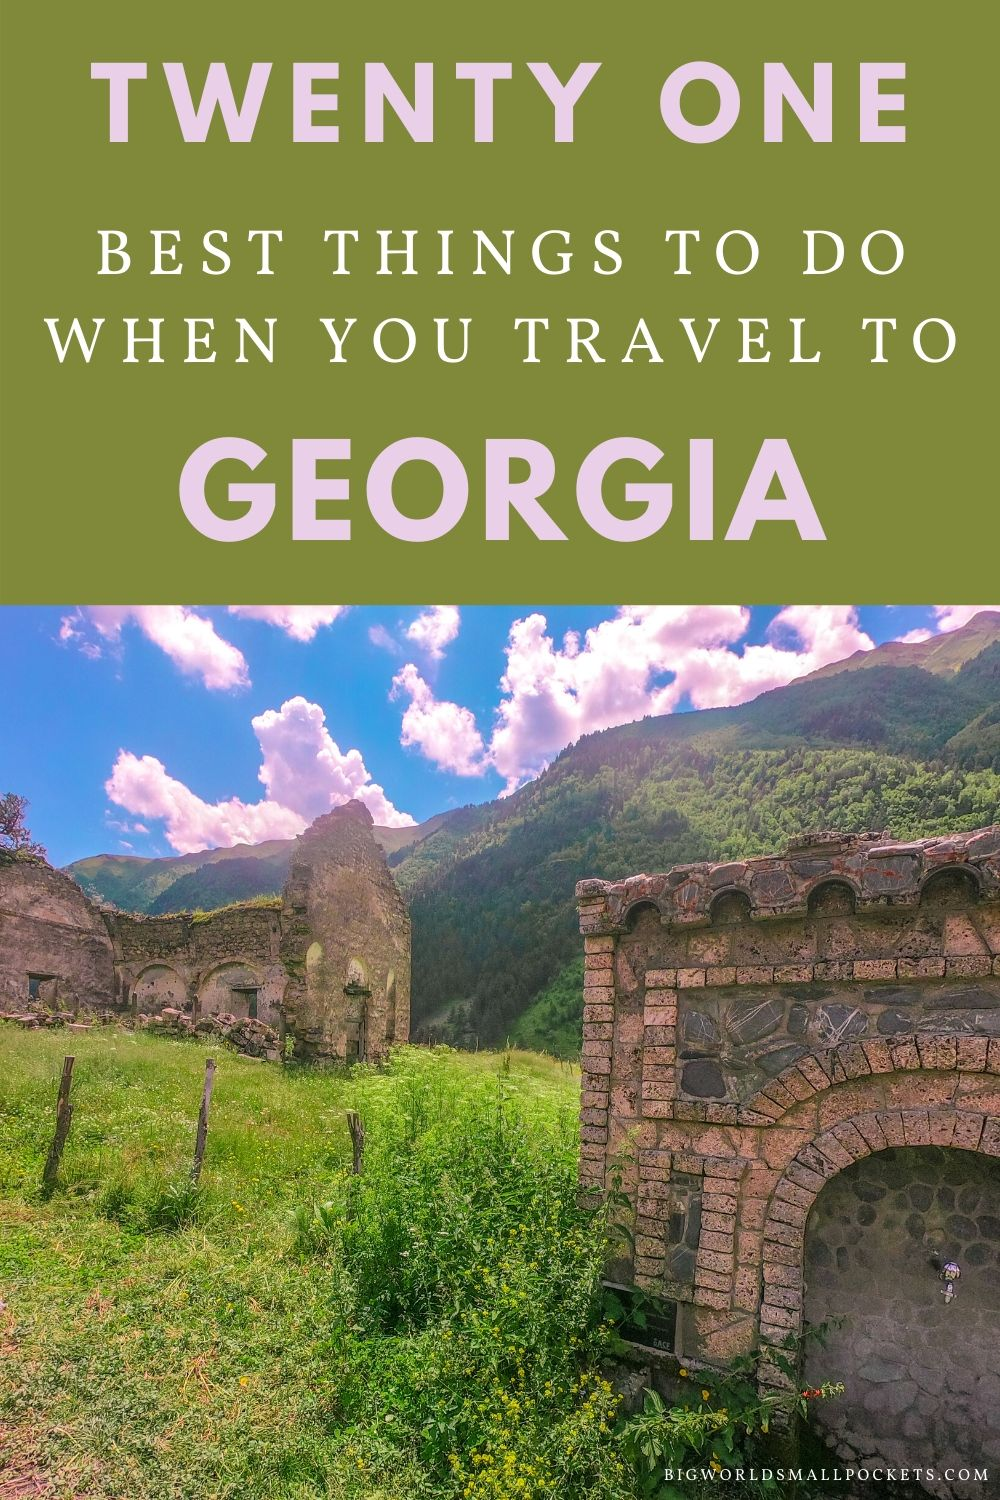 Top 21 Things To Do in Georgia